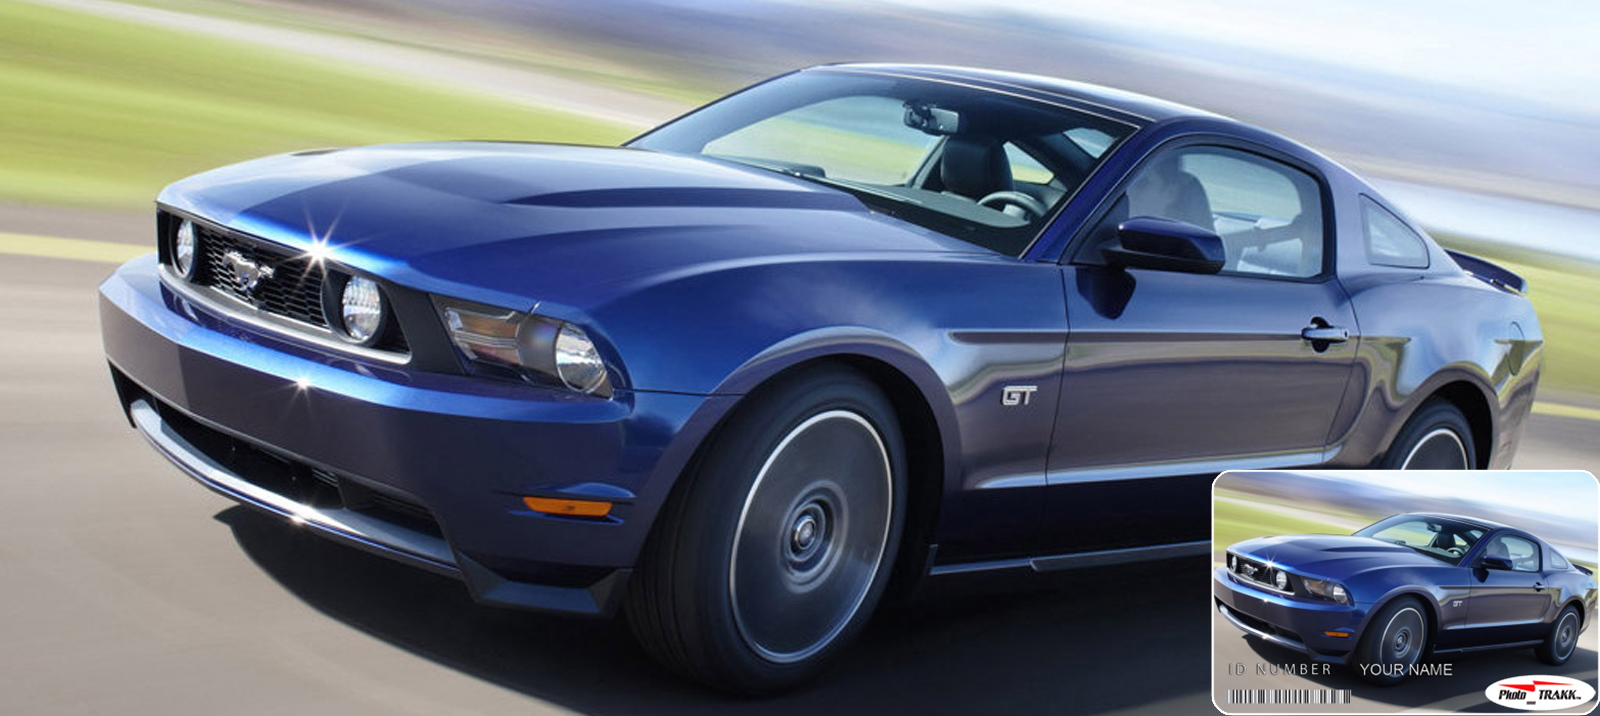 Ford Mustang GT Blue Color with Demo Vehicle ID Card